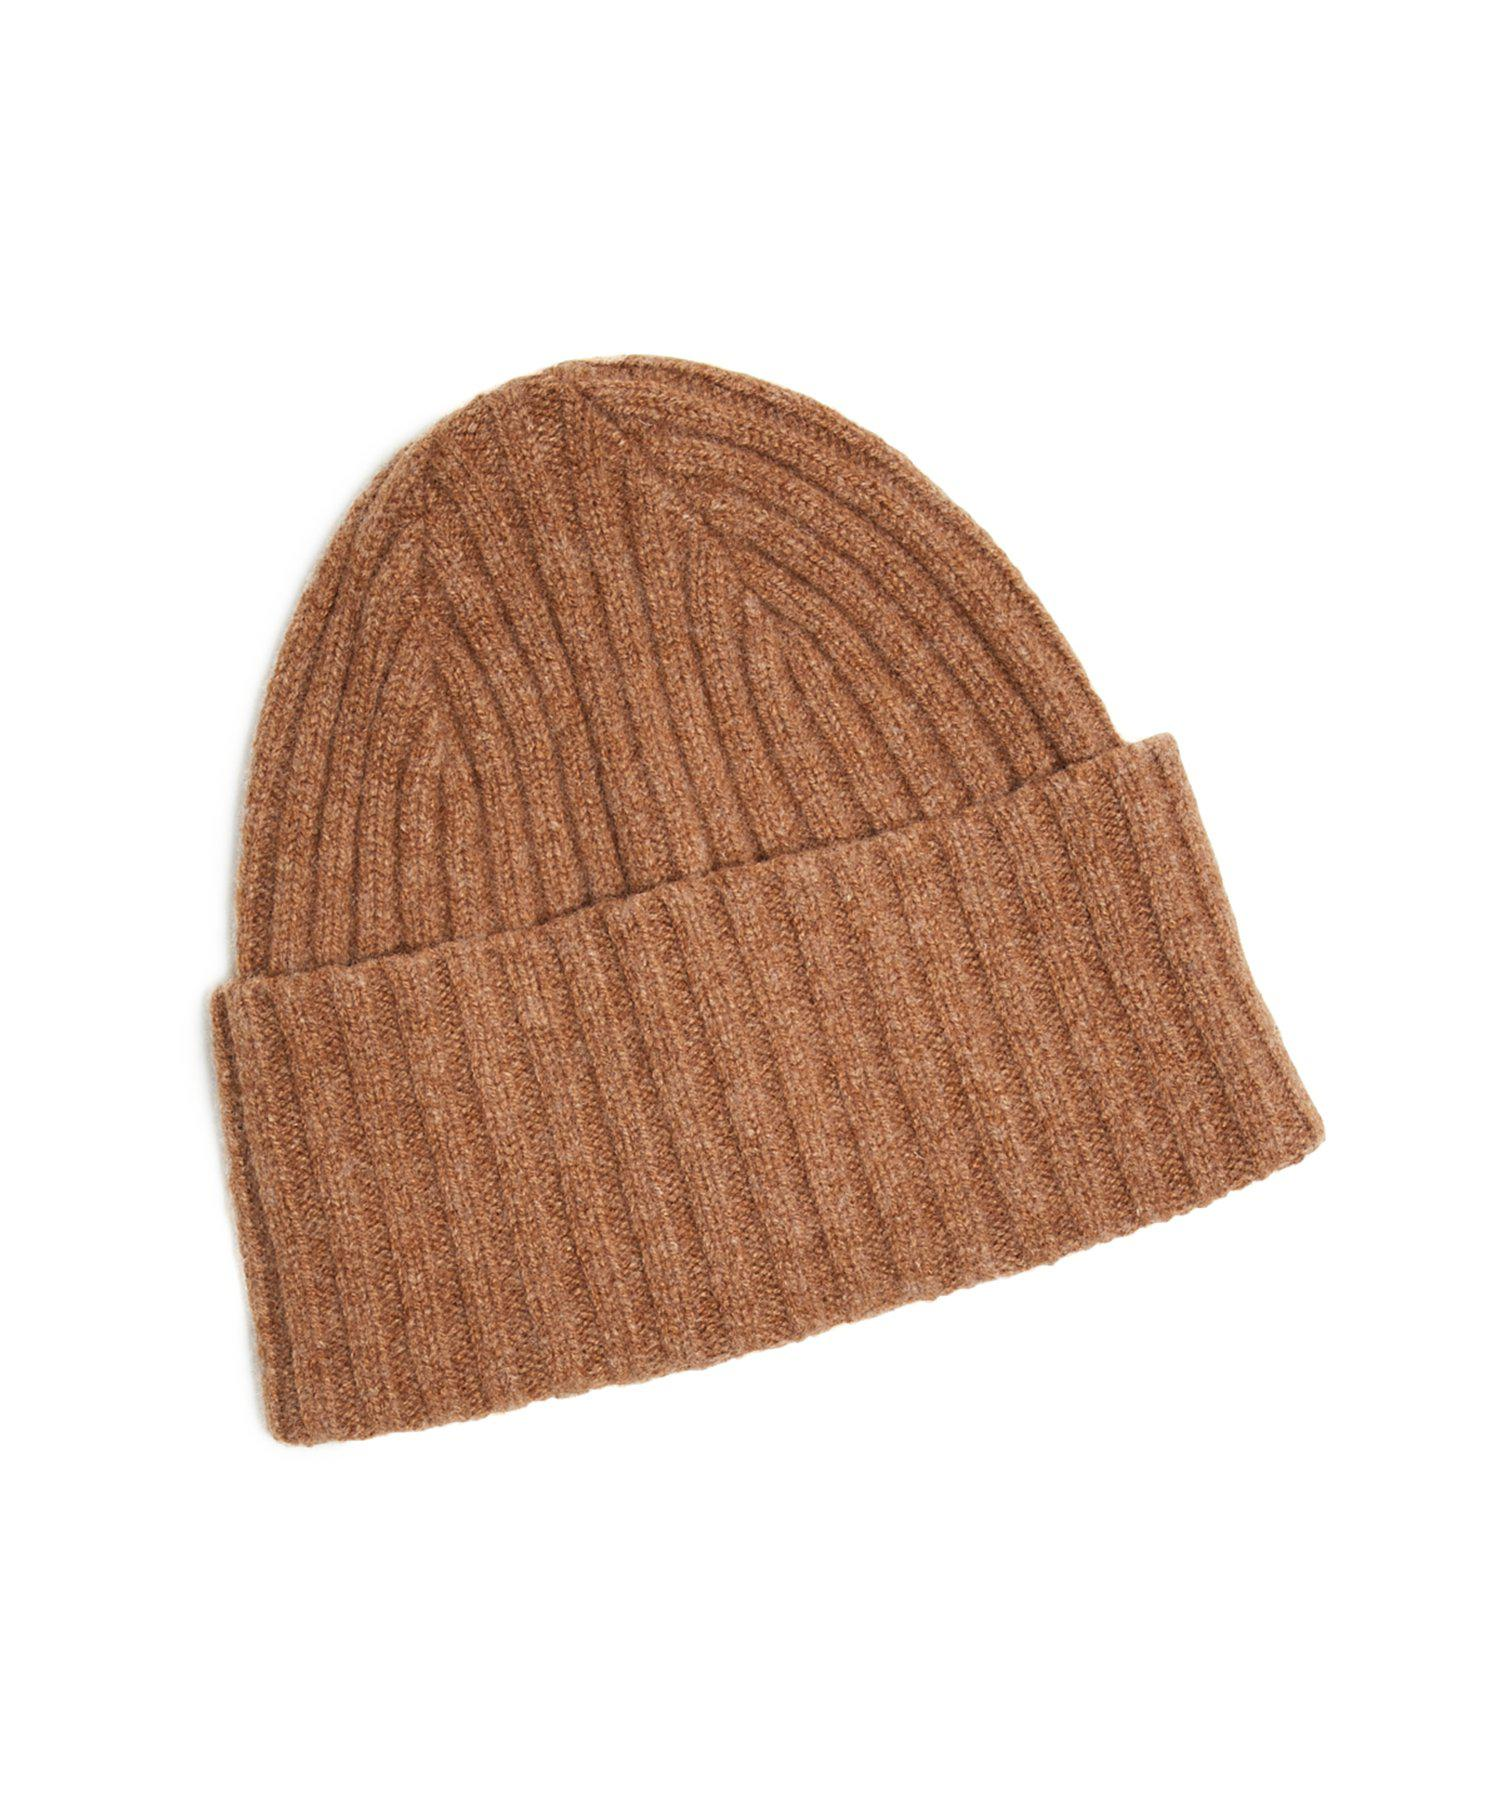 bac9c9699f9 Lyst - Drake s Brushed Merino Wool Hat In Tan in Brown for Men